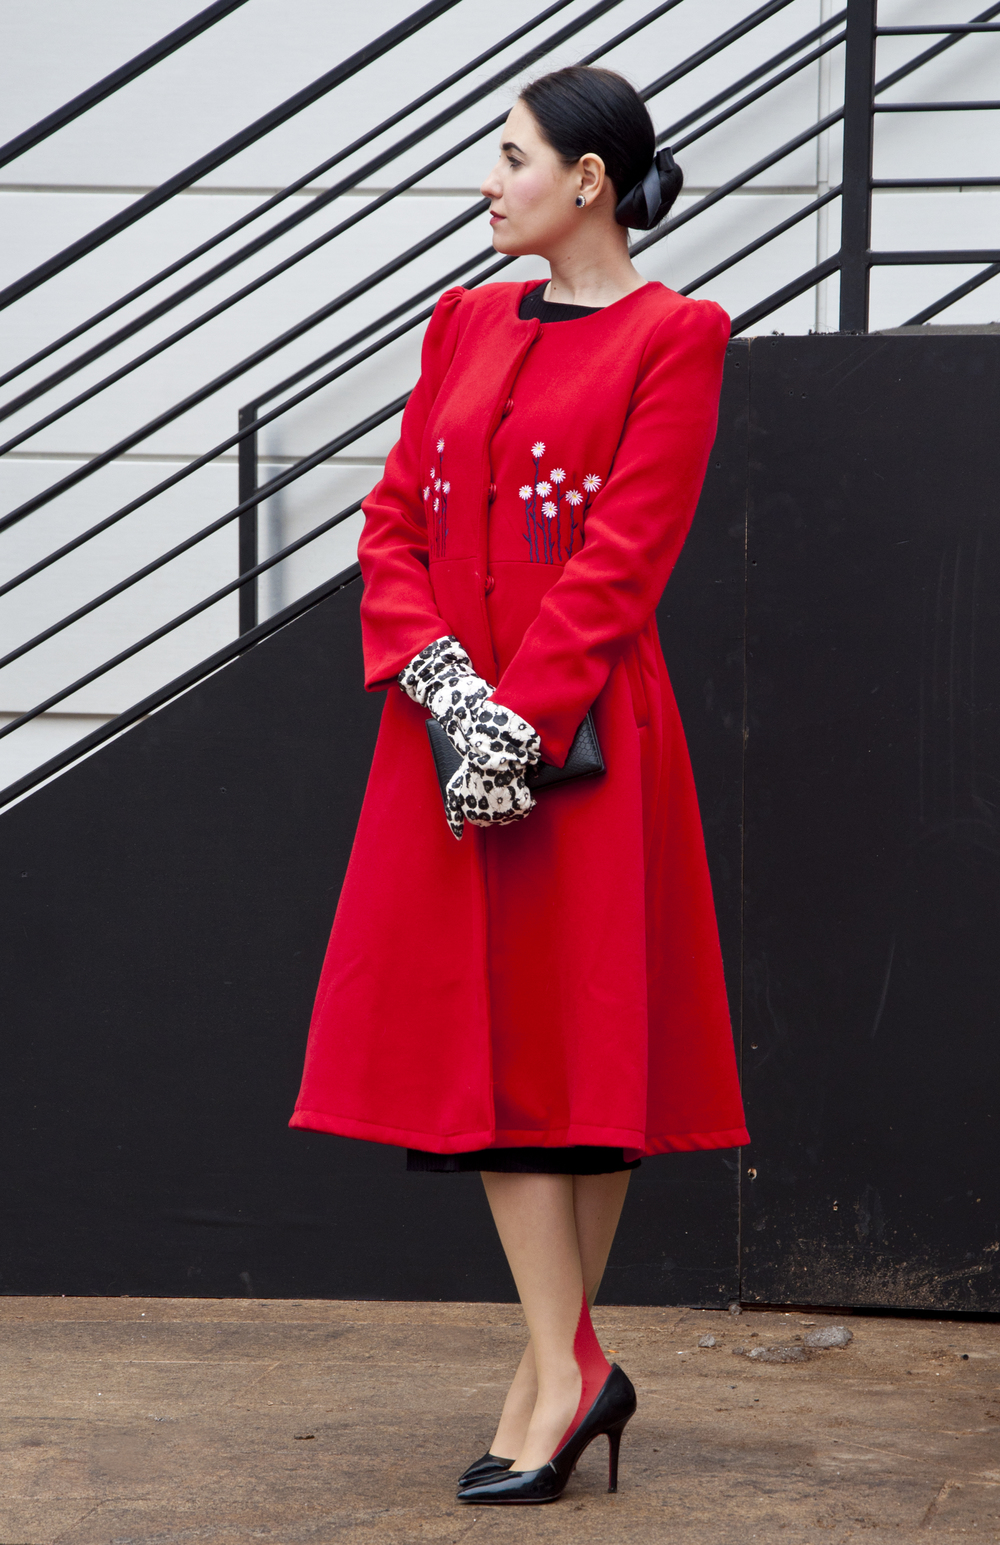 Nora Kobrenik wearing a coat by Vika Gazinskaya Loubs, paired with a vintage clutch